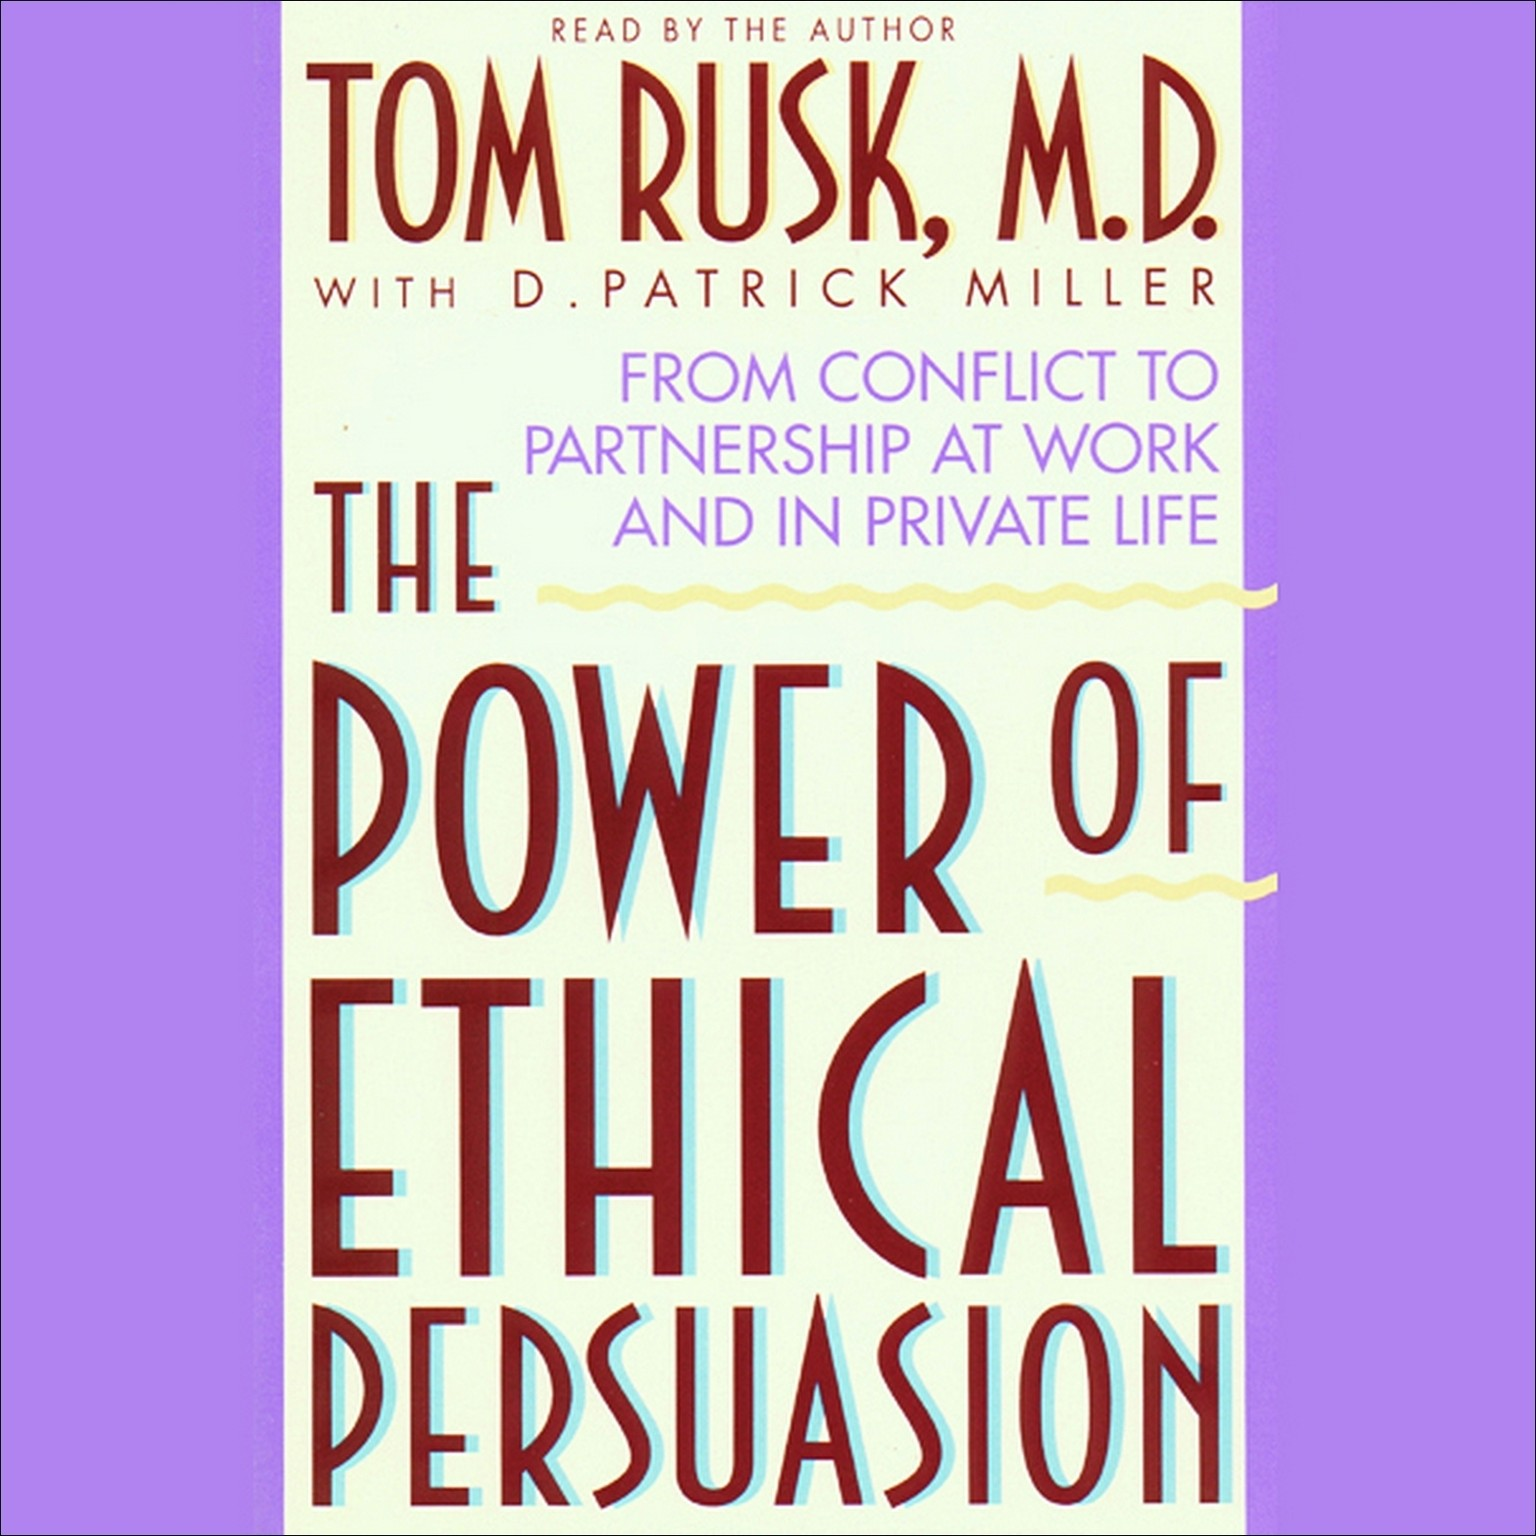 Printable The Power of Ethical Persuasion: From Conflict to Partnership at Work and in Private Life Audiobook Cover Art